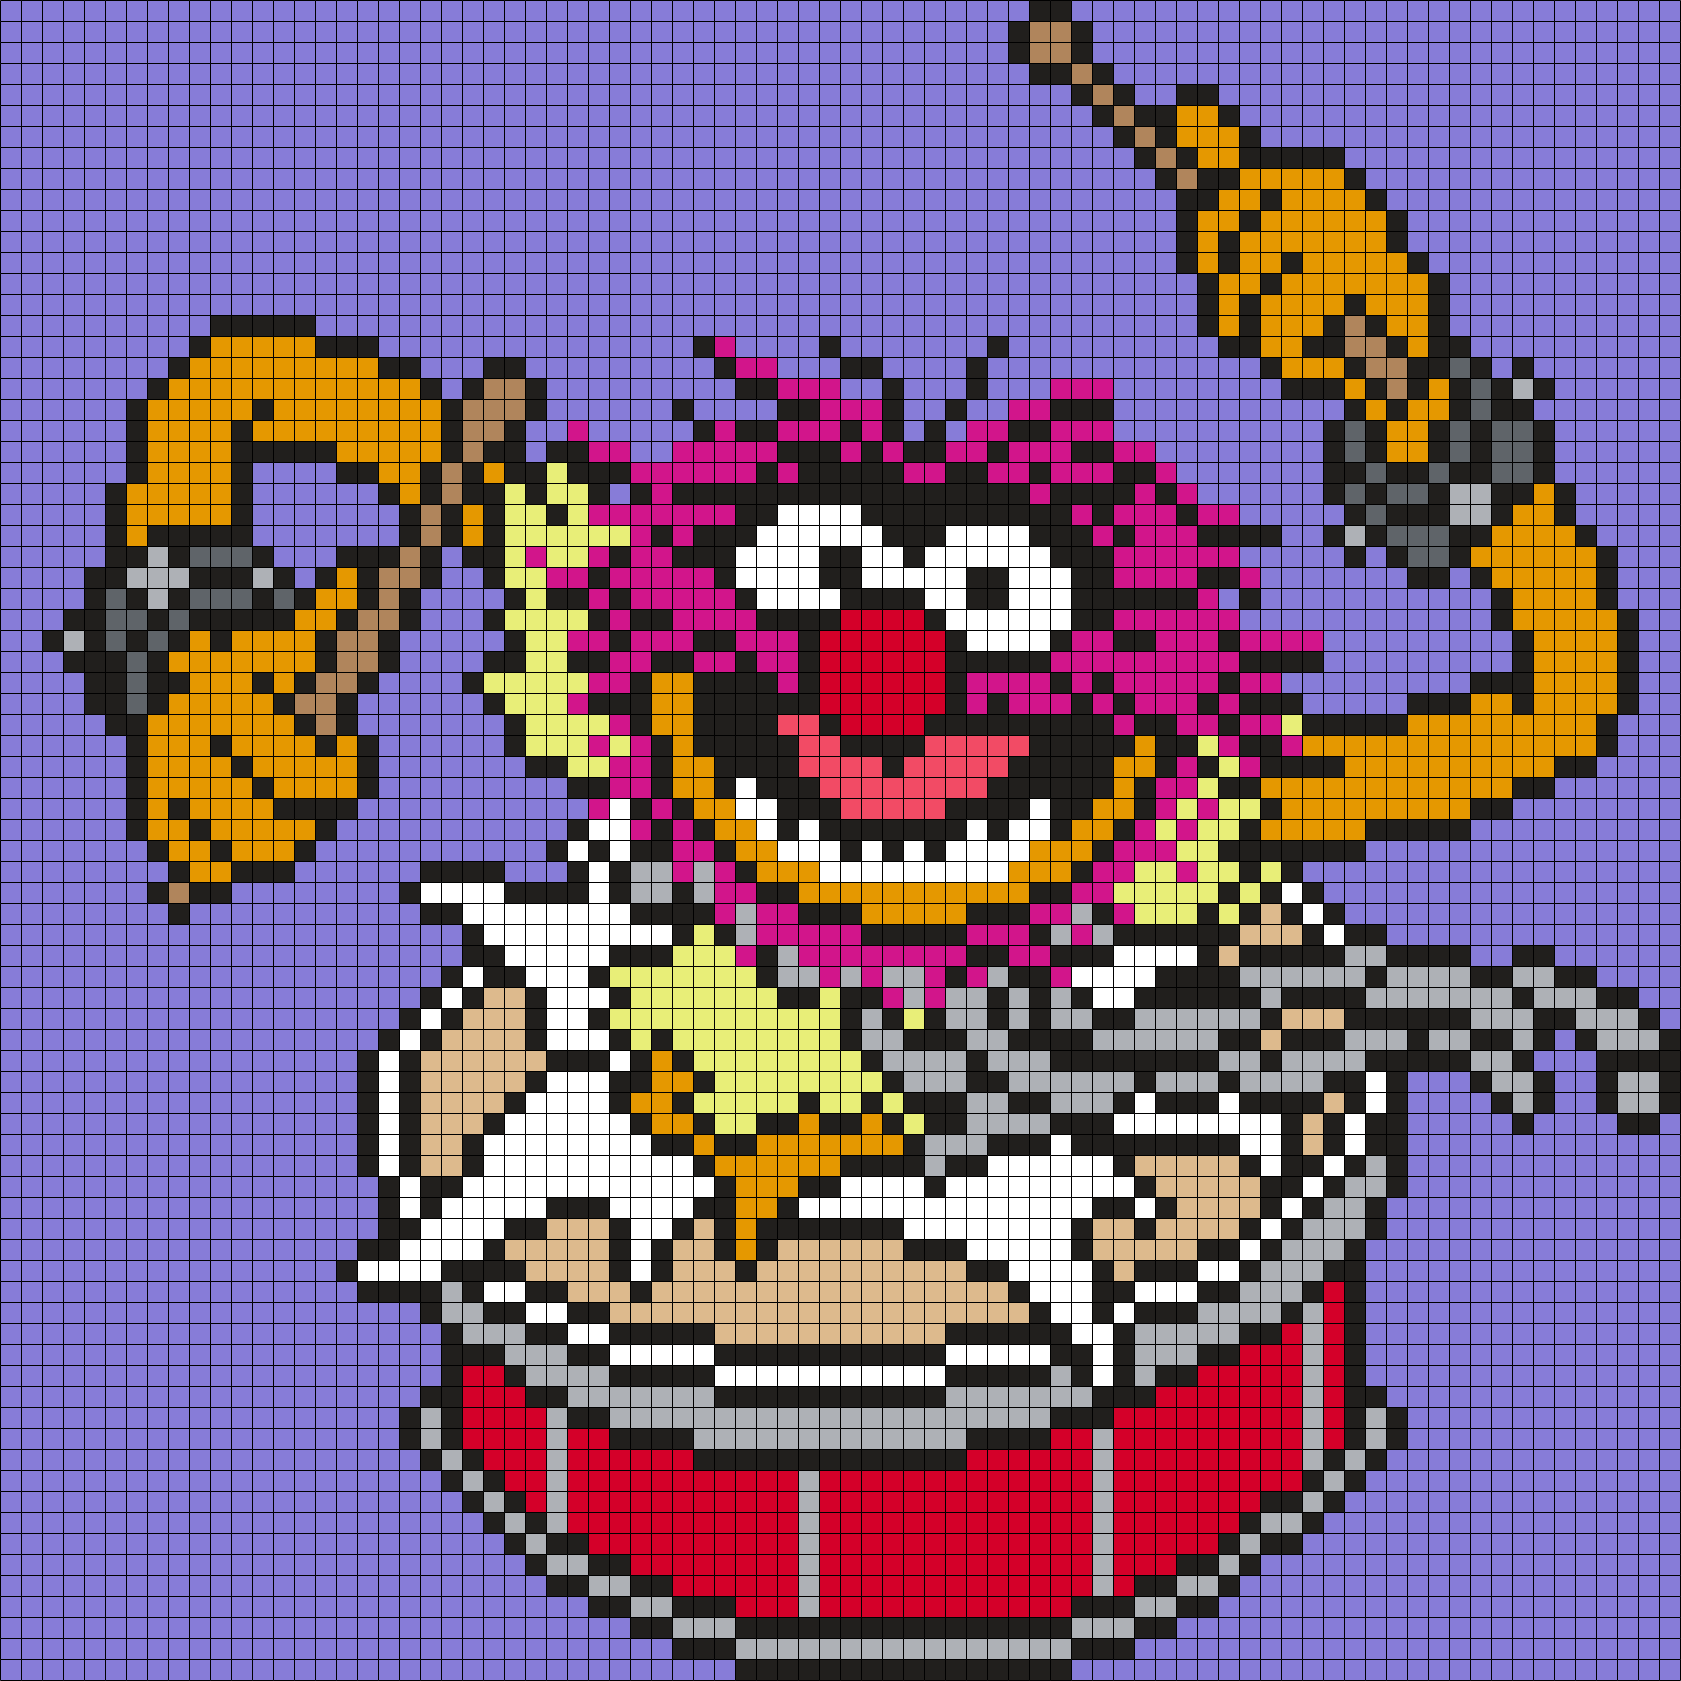 """Animal """"DRUMS"""" from The Muppets (Square Grid Pattern)"""